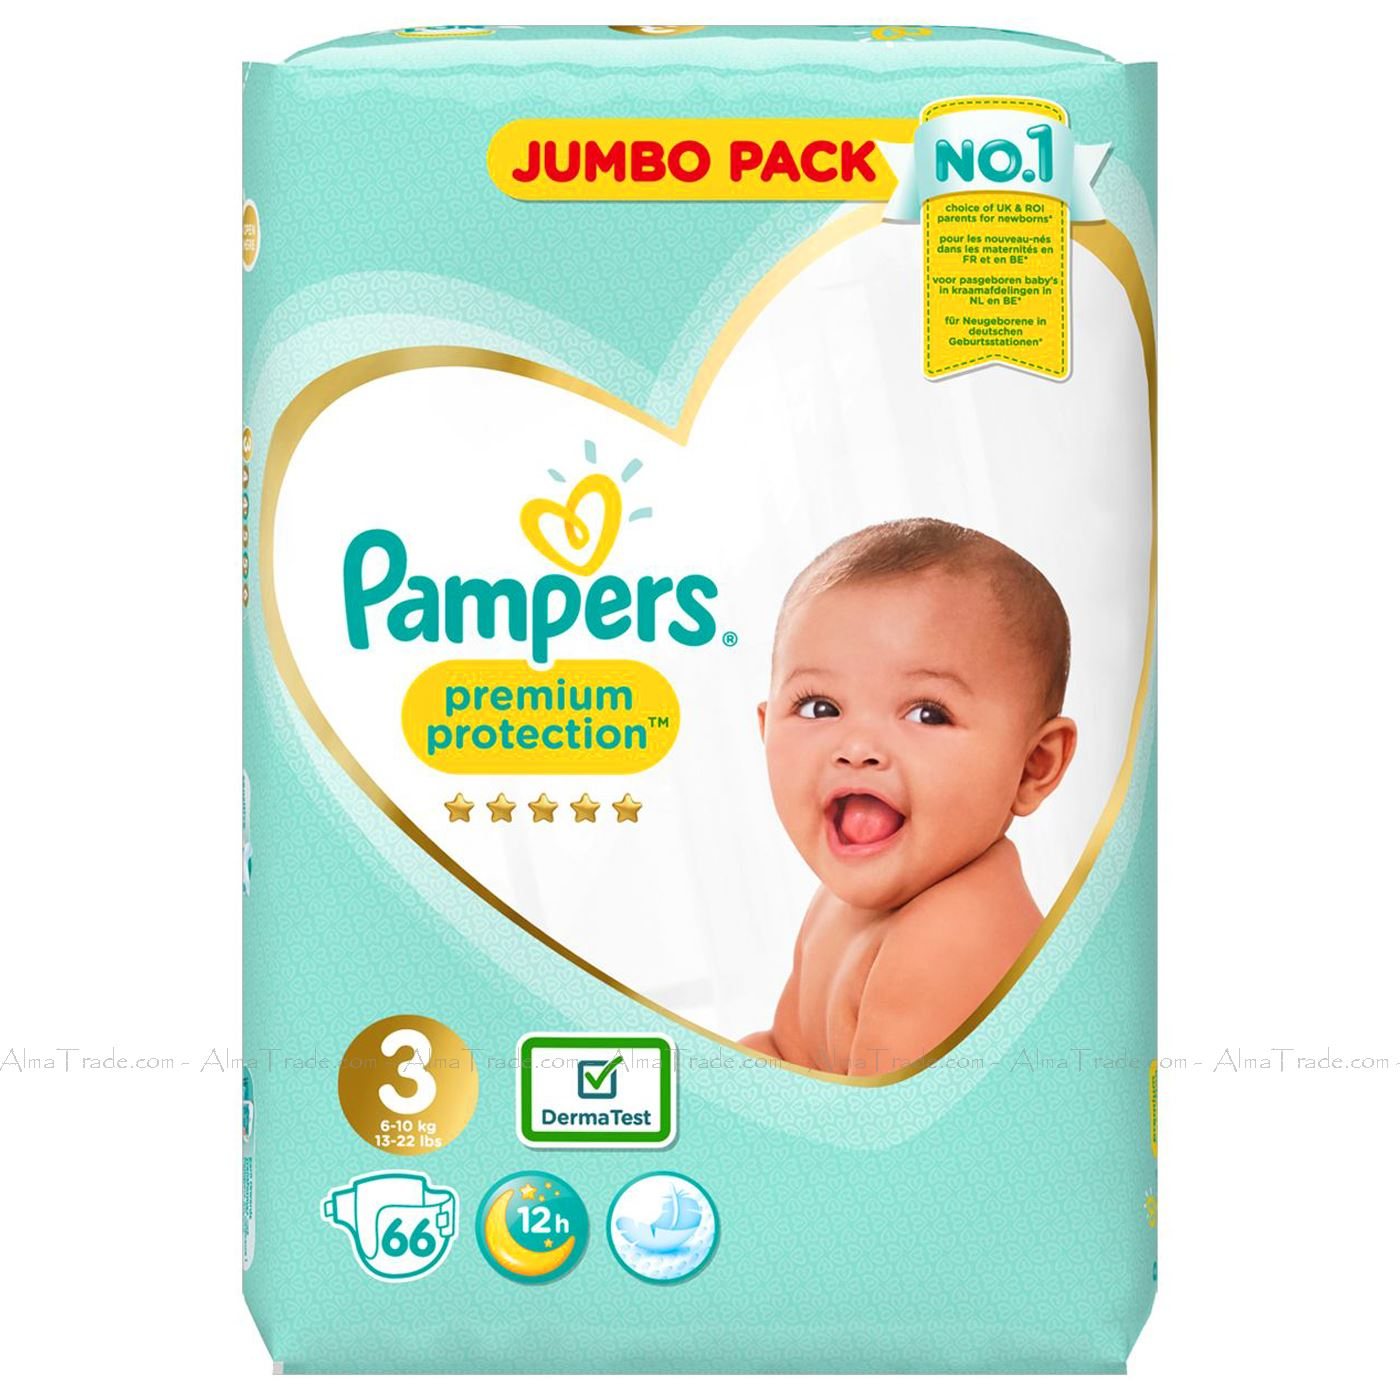 Pampers-Baby-Dry-Nappy-Air-Channels-Nappies-Size-1-2-3-4-5-6-7-Jumbo-Giga-Pack thumbnail 14